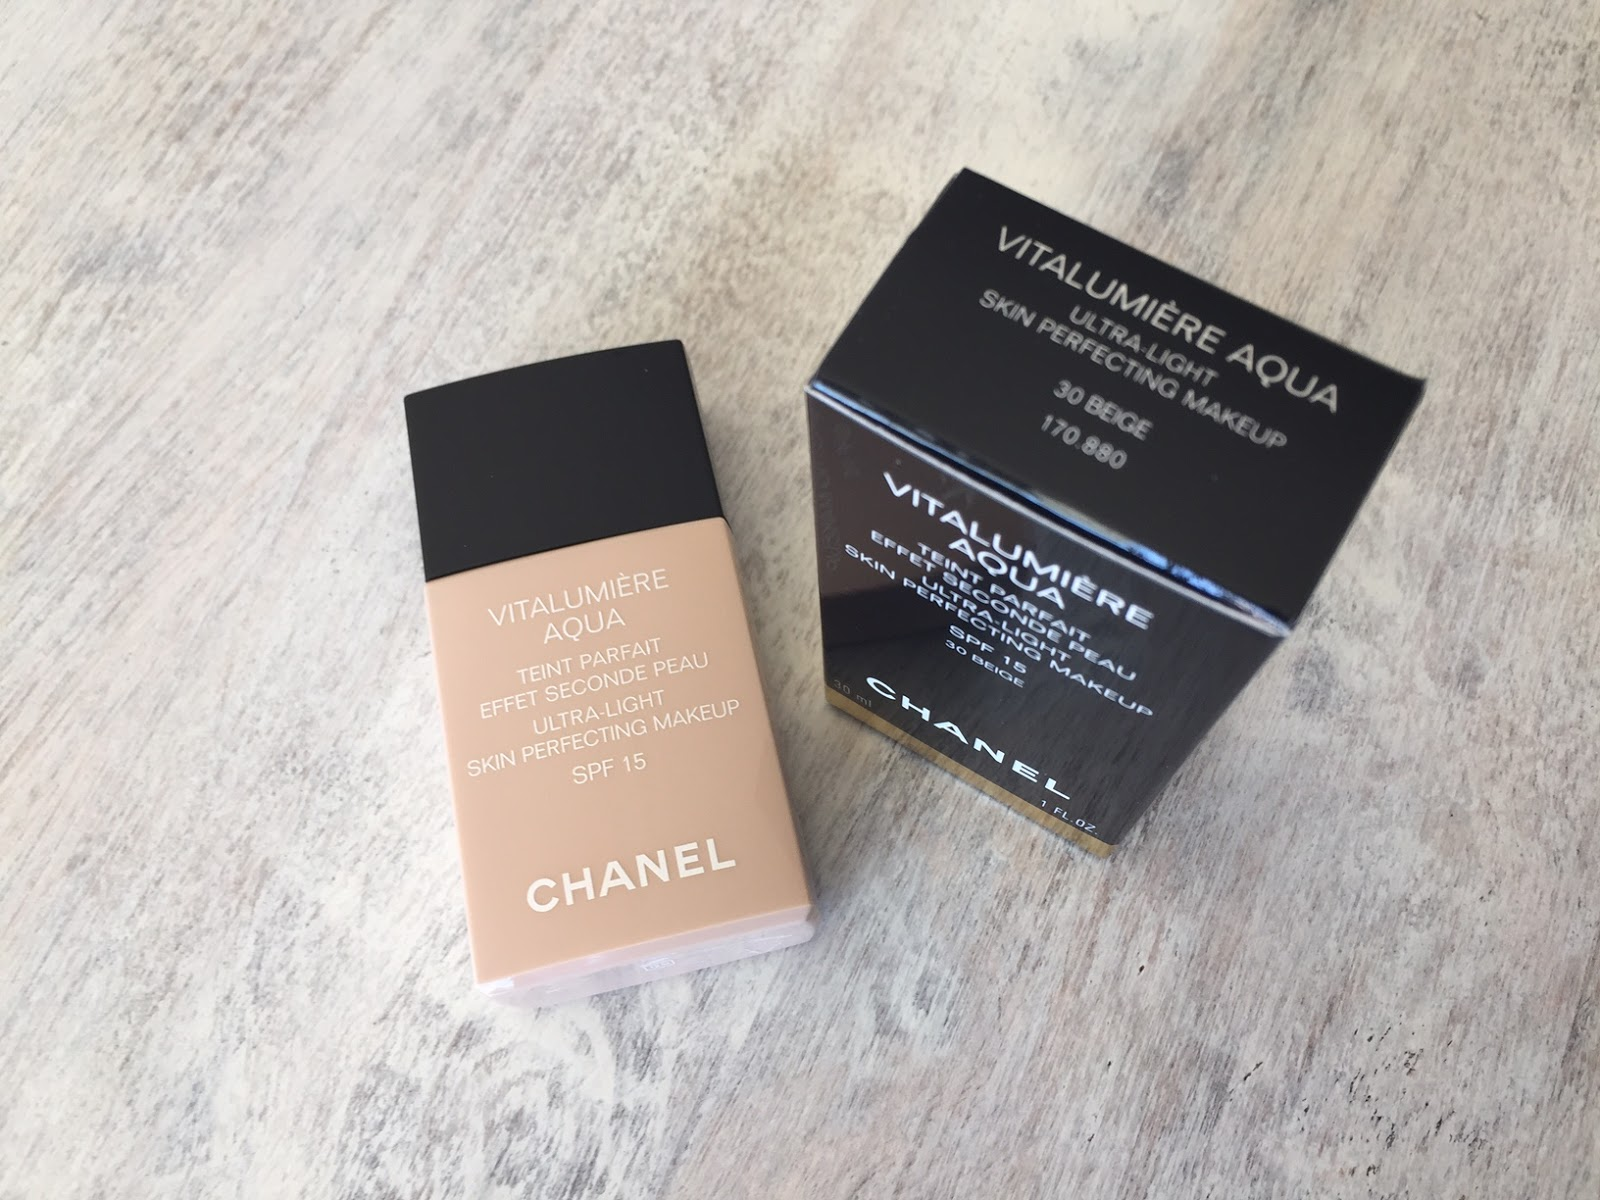 Keeping Up In Canberra Beauty Chanel Vitalumiere Aqua Beige 30 Vitalumire Ultra Light Skin Perfecting Makeup Spf 15 Note That The Packaging Is Similar To Perfection Lumiere Velvet Which I Do Not Like As Much